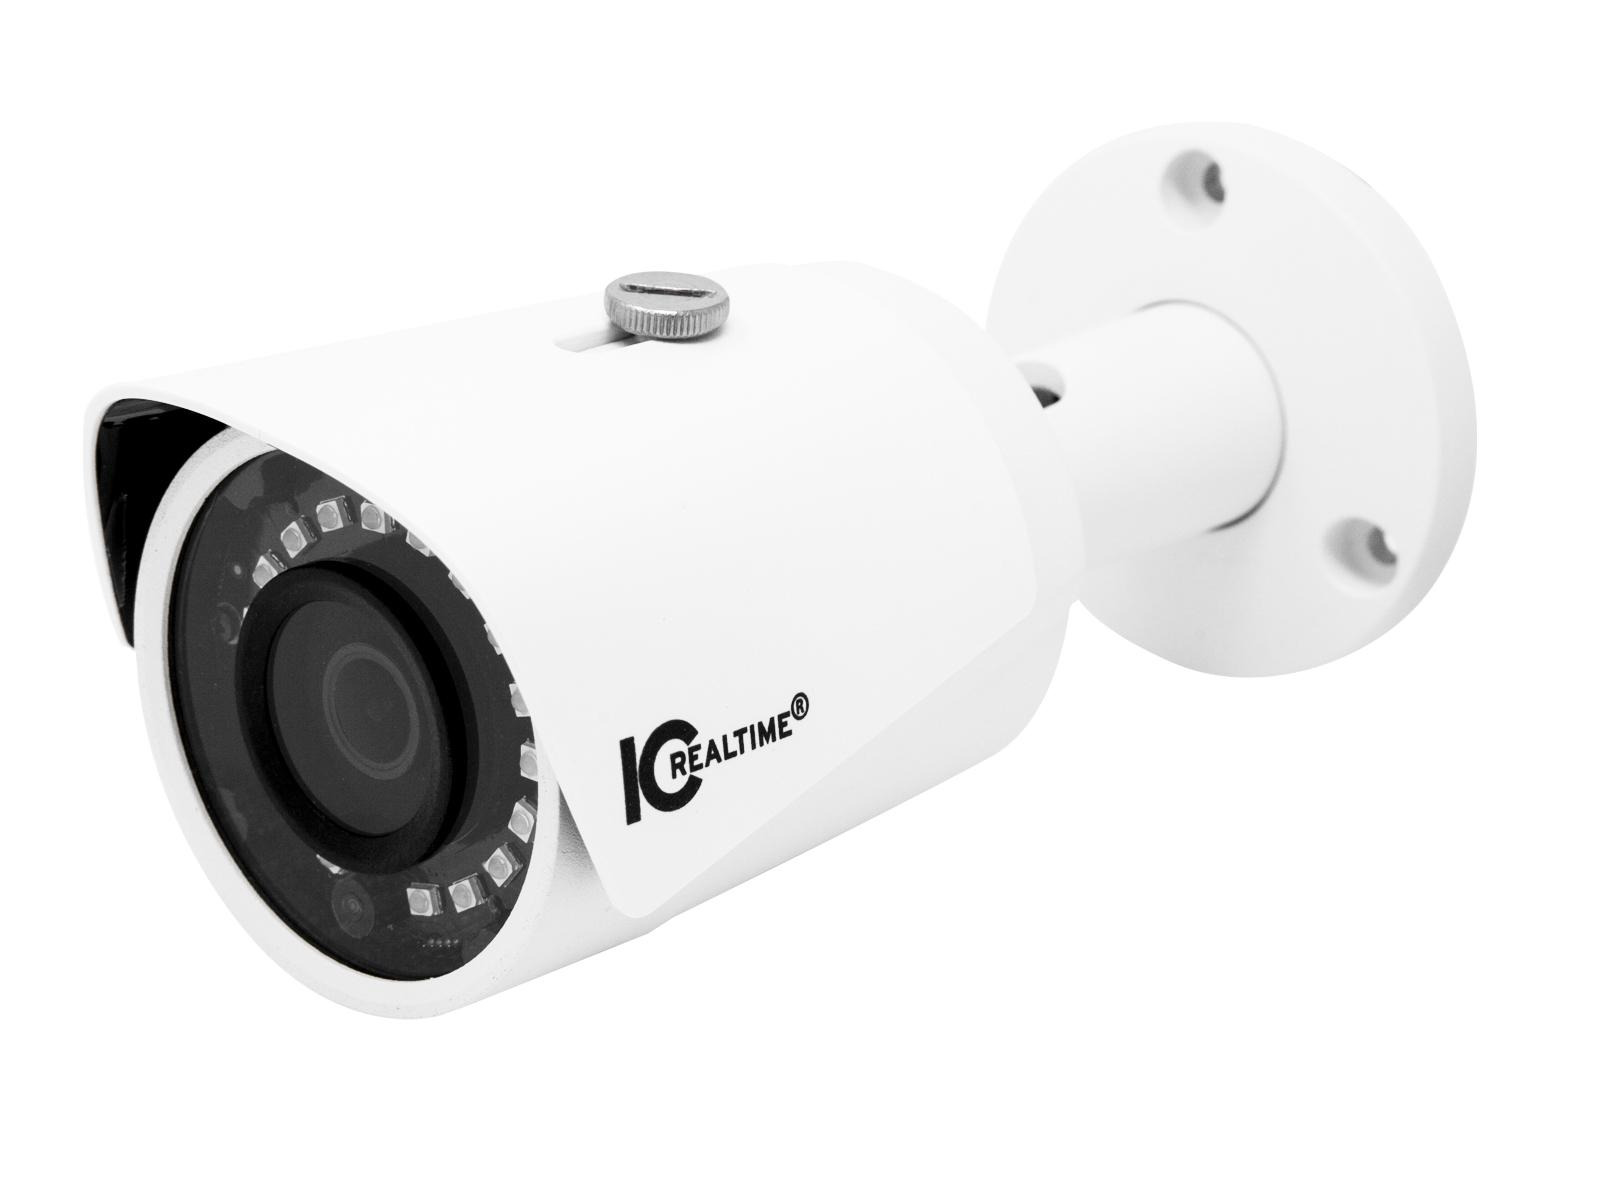 ICRealtime ICR-B4001-IR 4MP IP Indoor/Outdoor Small Size Bullet Camera with 2.8mm Lens/98ft Smart IR/POE